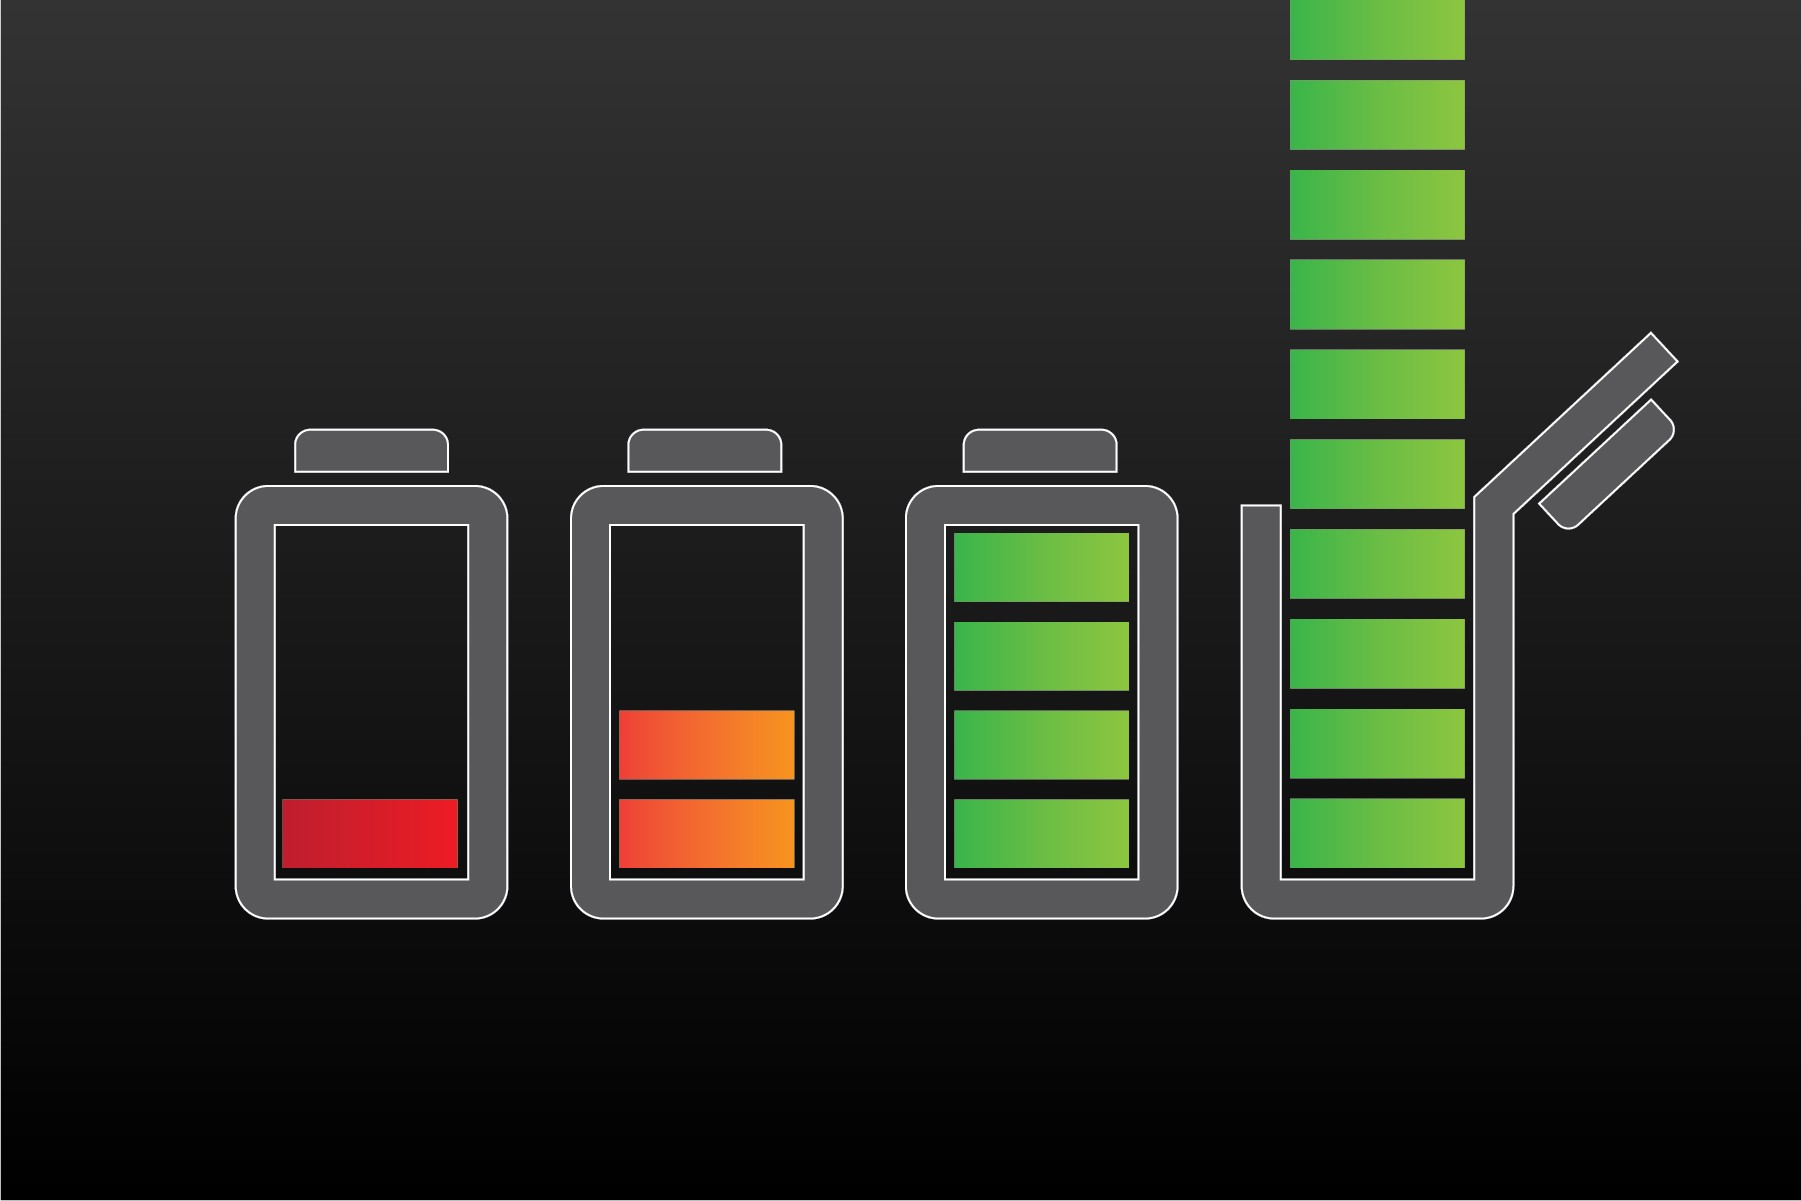 Icon of battery charged beyond 100 percent